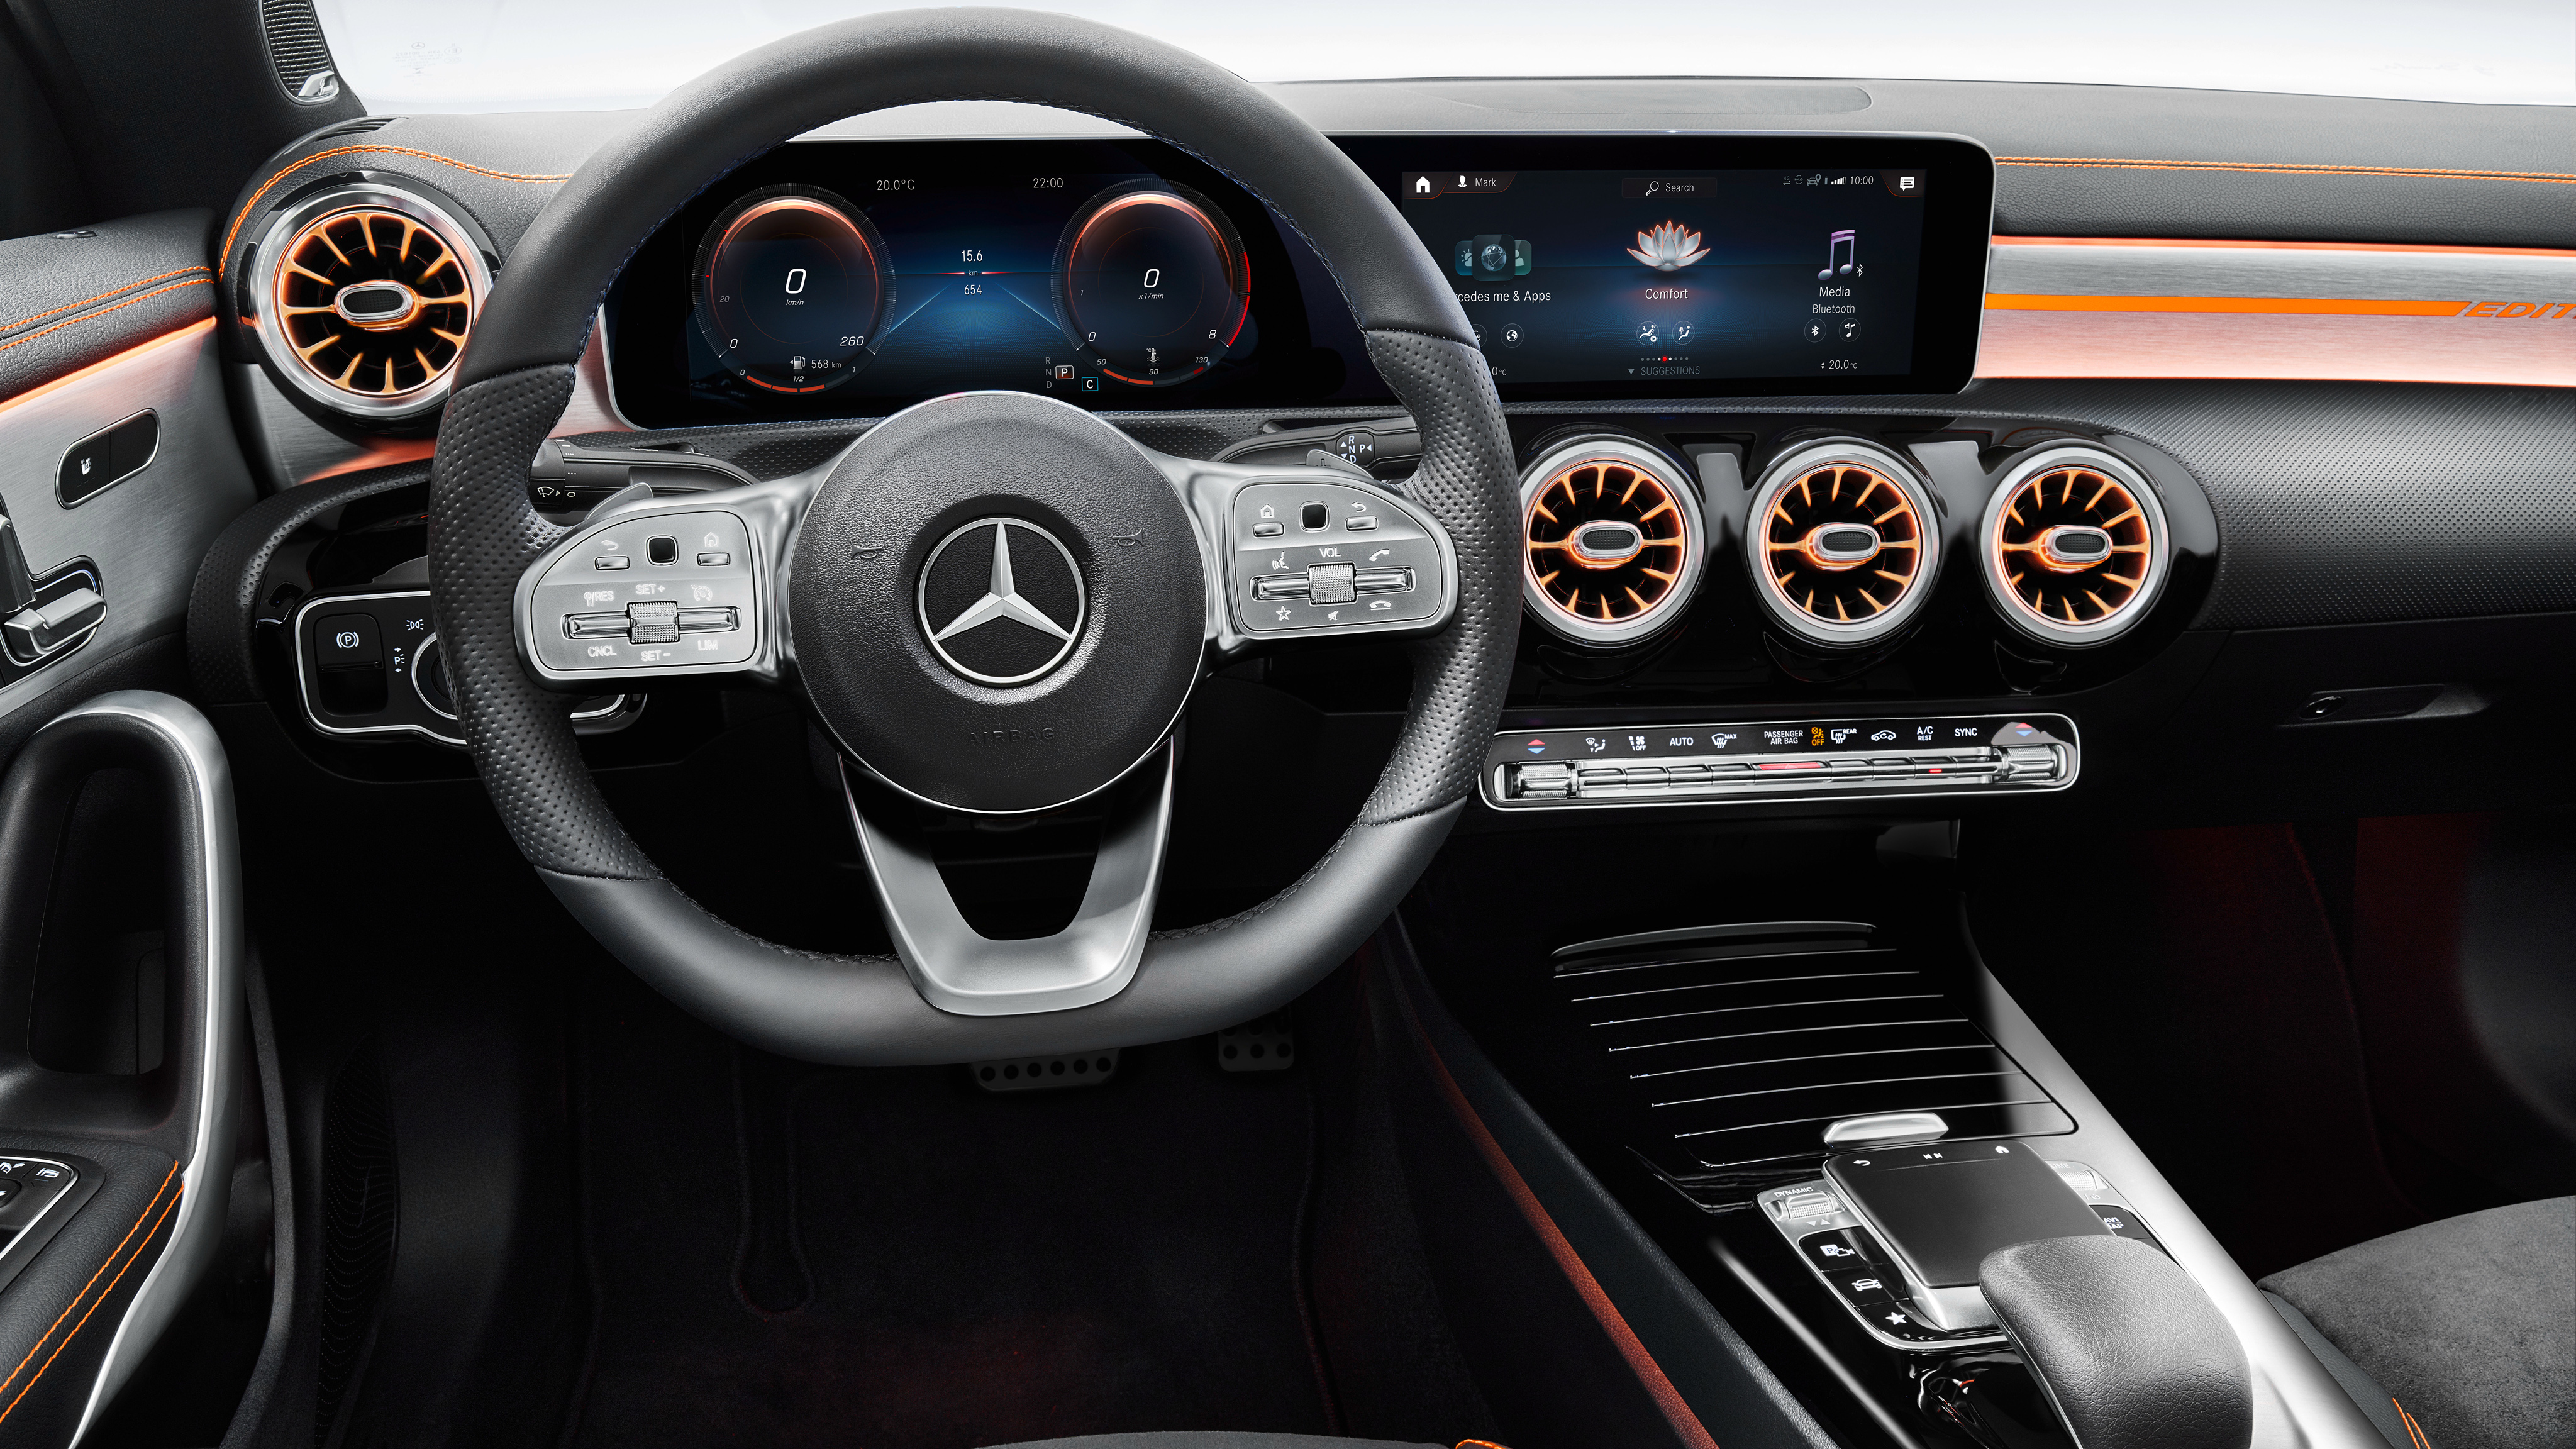 Mercedes Benz Cla 250 Amg Line Edition Orange Art 2019 4k Interior